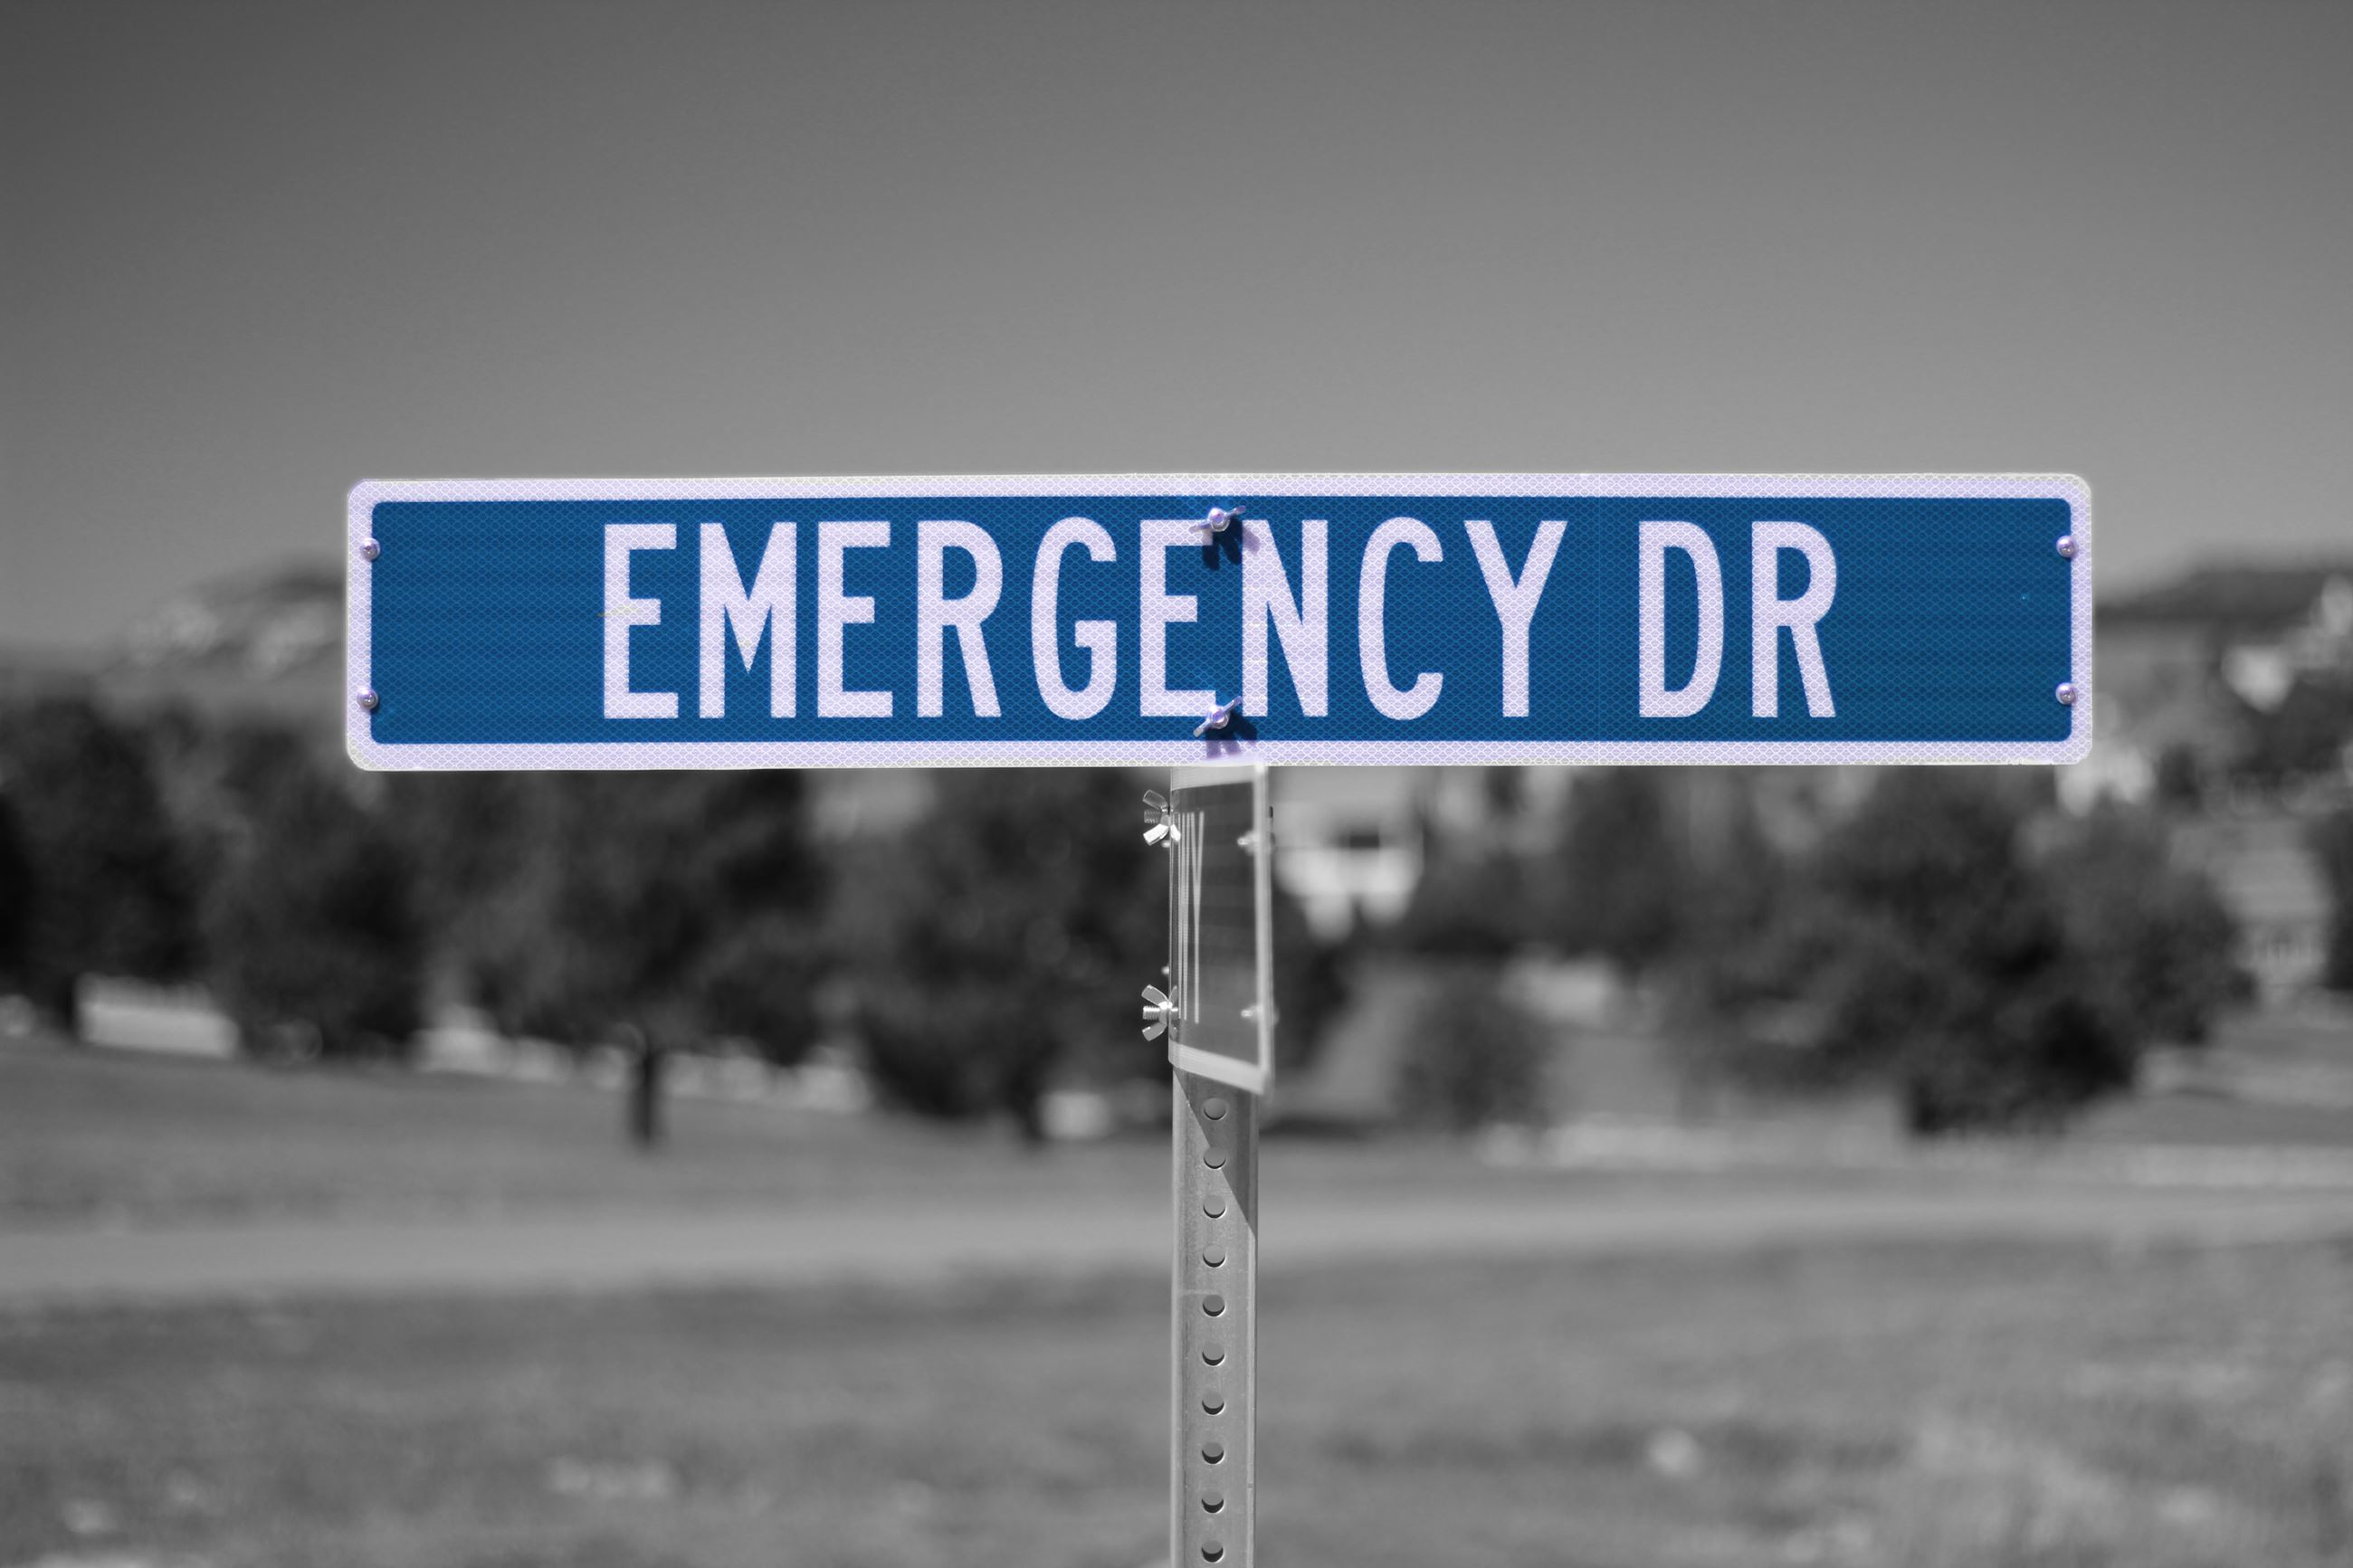 Emergency Dr